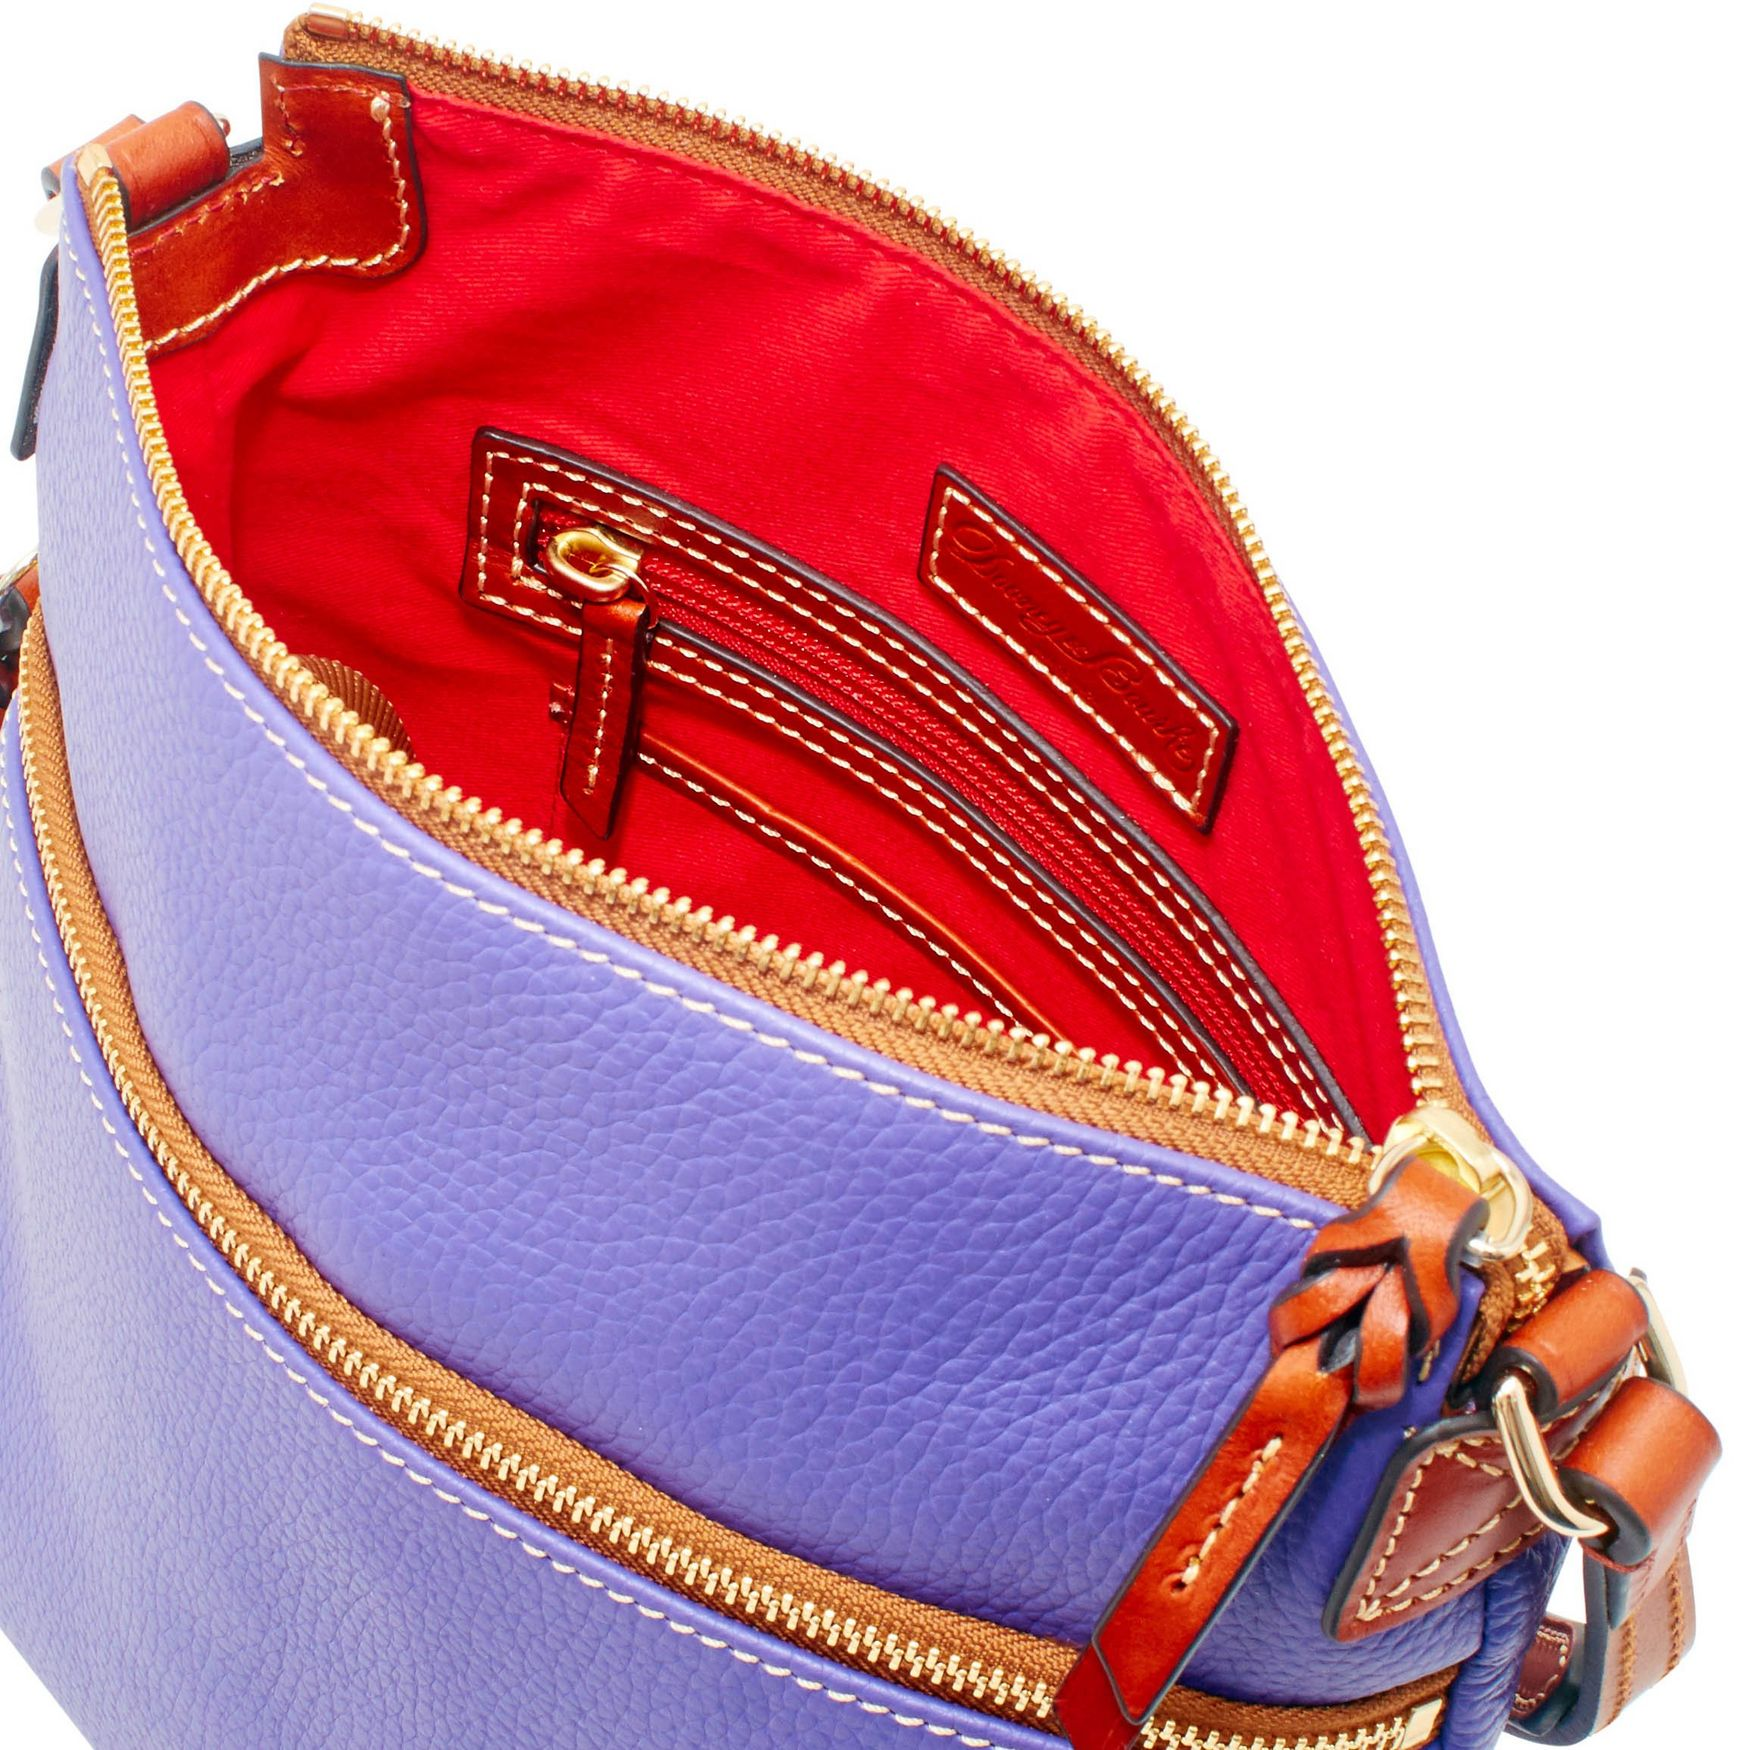 Dooney-amp-Bourke-Pebble-Grain-Crossbody-Medium-Wristlet-Shoulder-Bag thumbnail 5